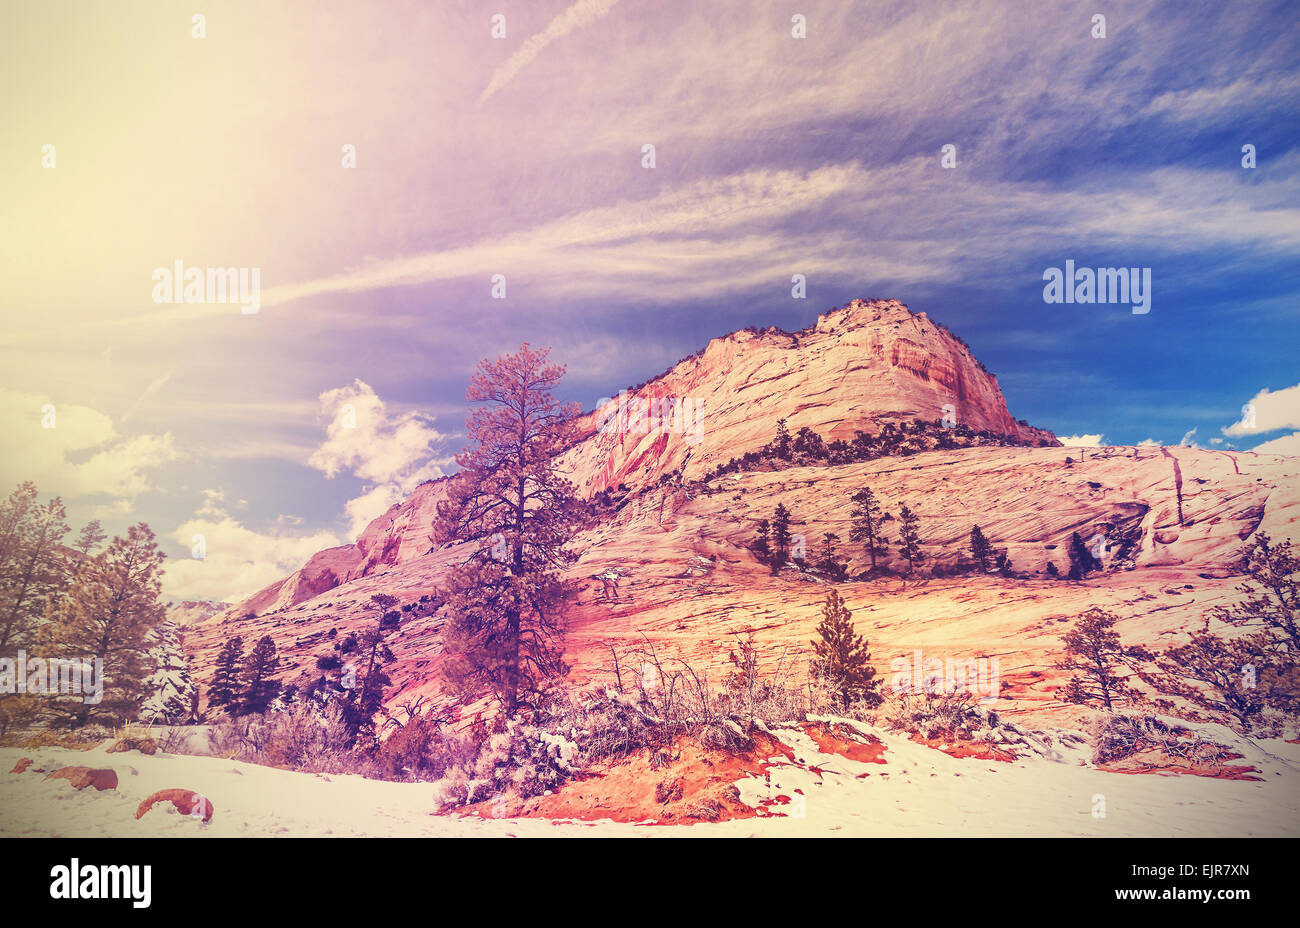 Vintage stylized mountains in Zion National Park, Utah, USA. - Stock Image